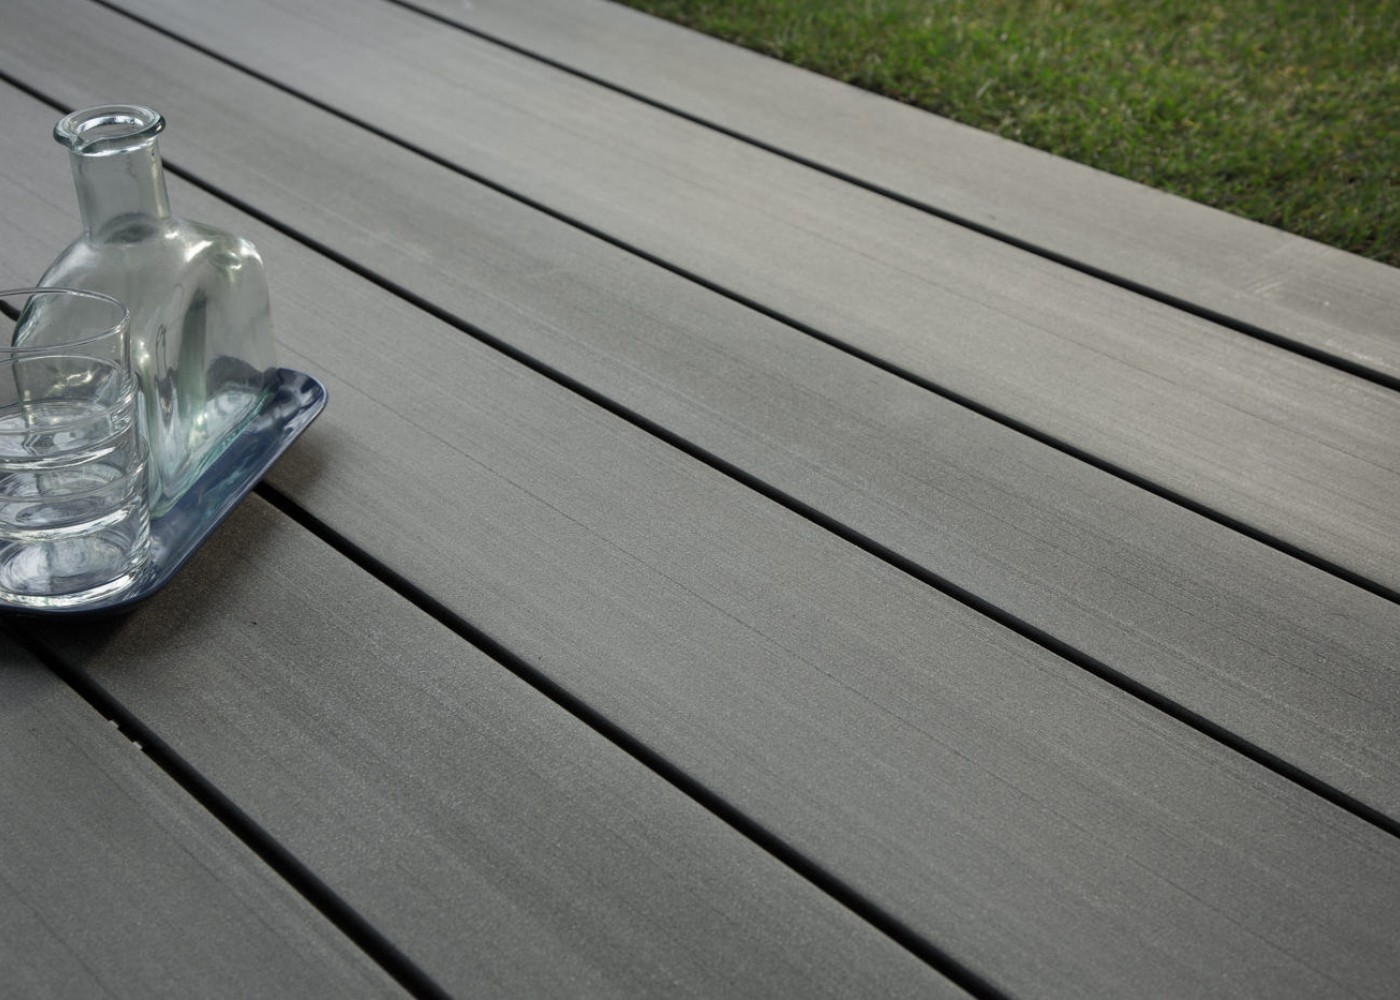 Lame Terrasse Composite Gris Anthracite Lame De Terrasse En Bois Composite, Teinte Gris Anthracite